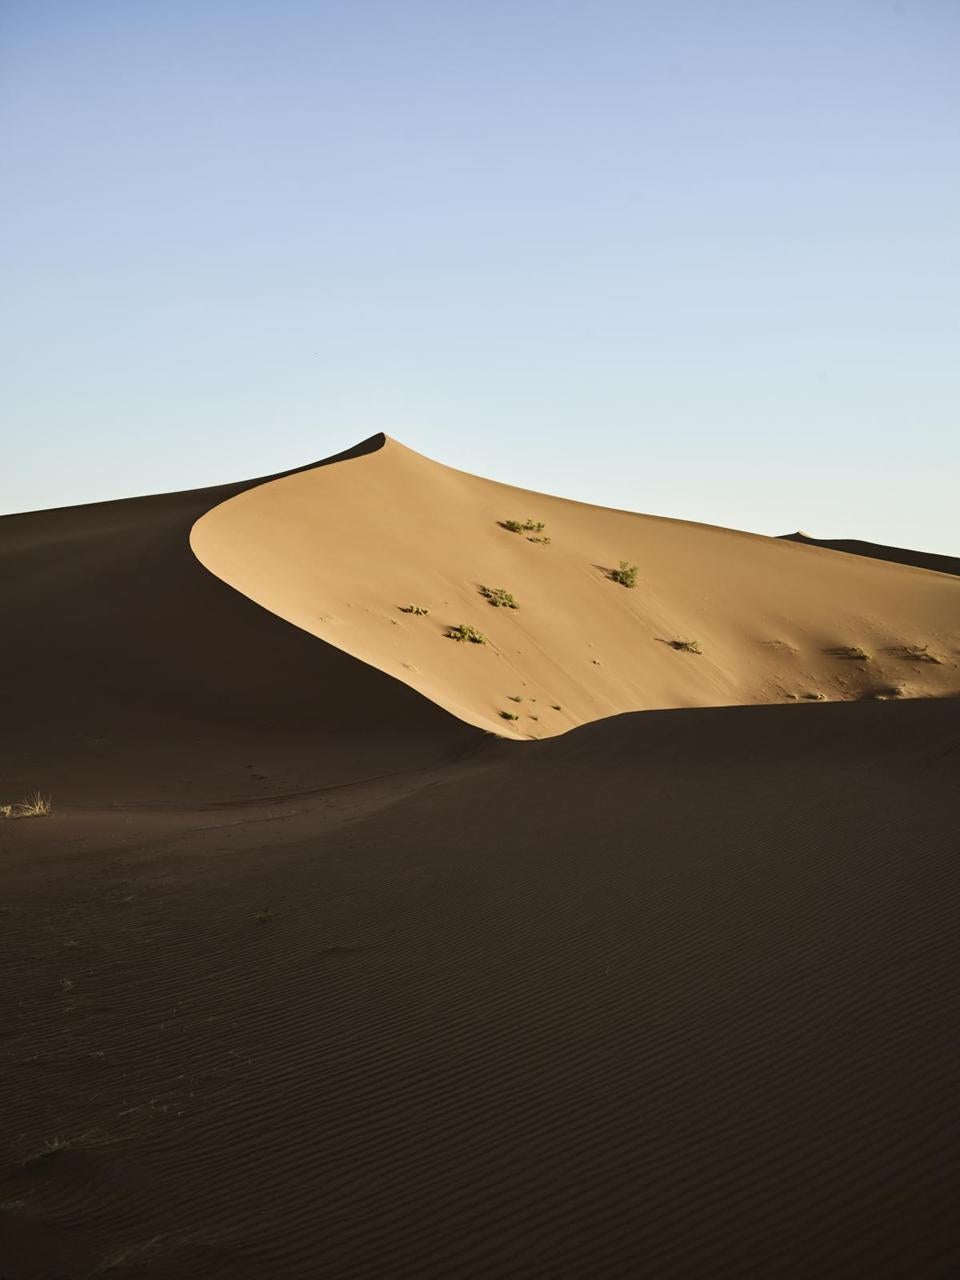 A towering dune in the Moroccan Sahara.